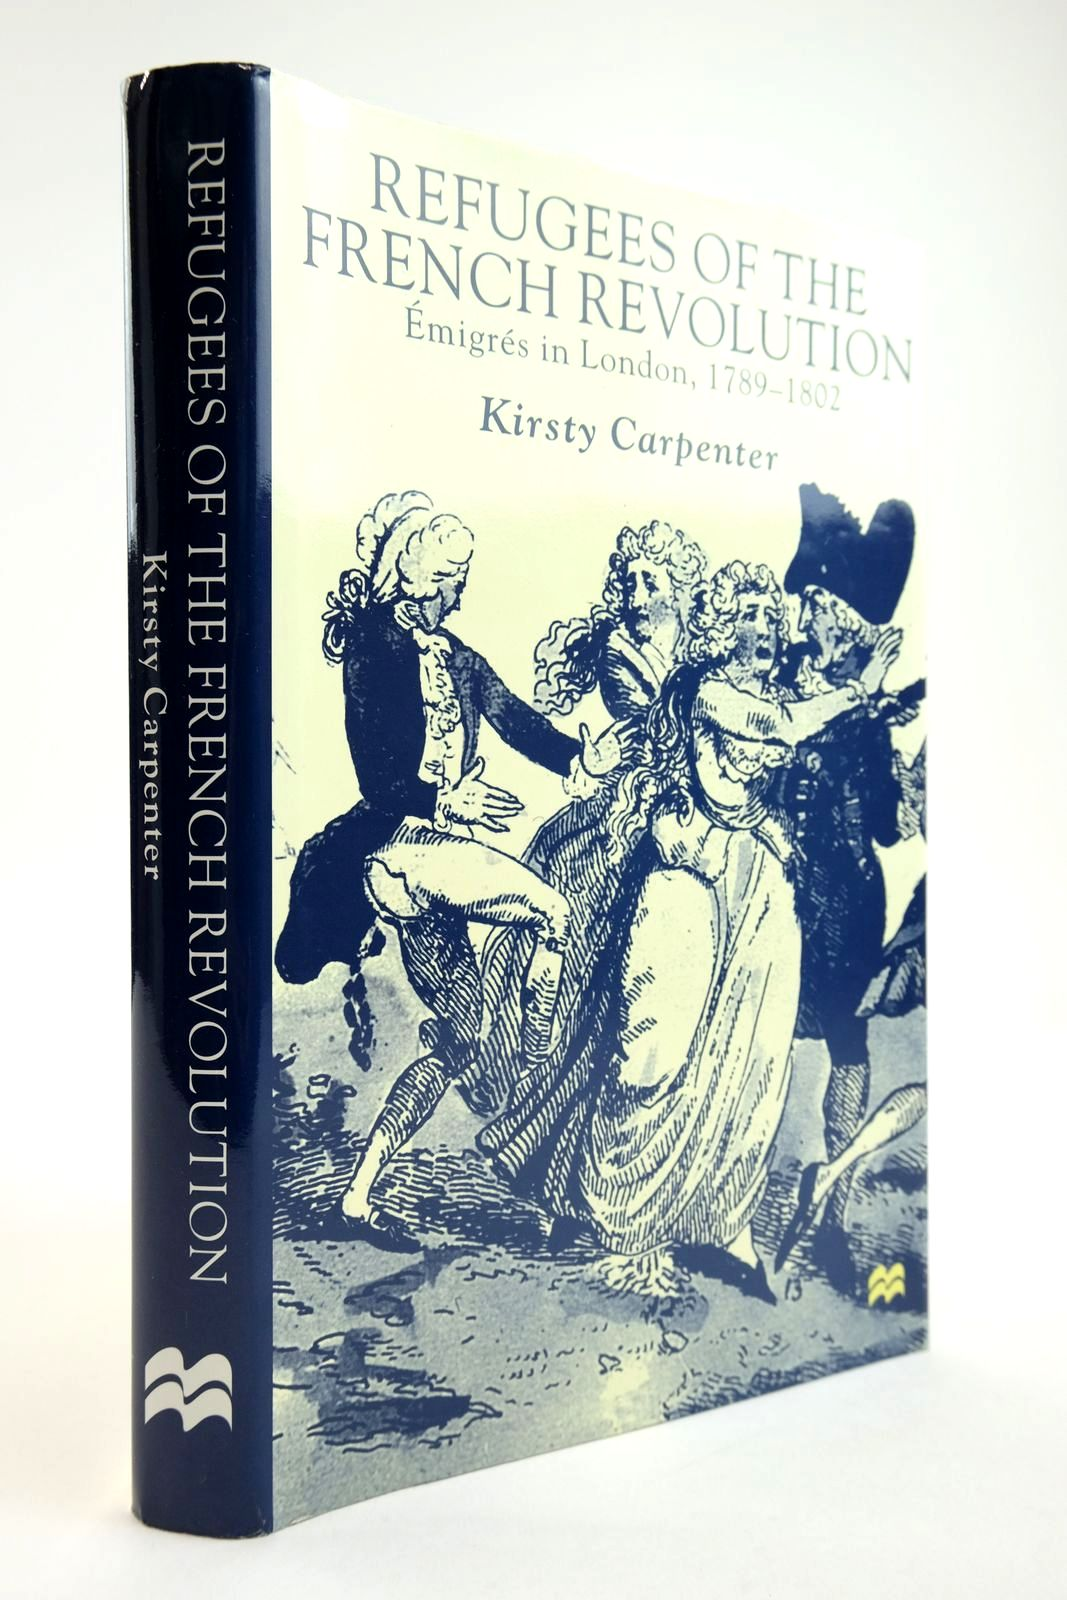 Photo of REFUGEES OF THE FRENCH REVOLUTION: EMIGRES IN LONDON, 1789-1802- Stock Number: 2134009